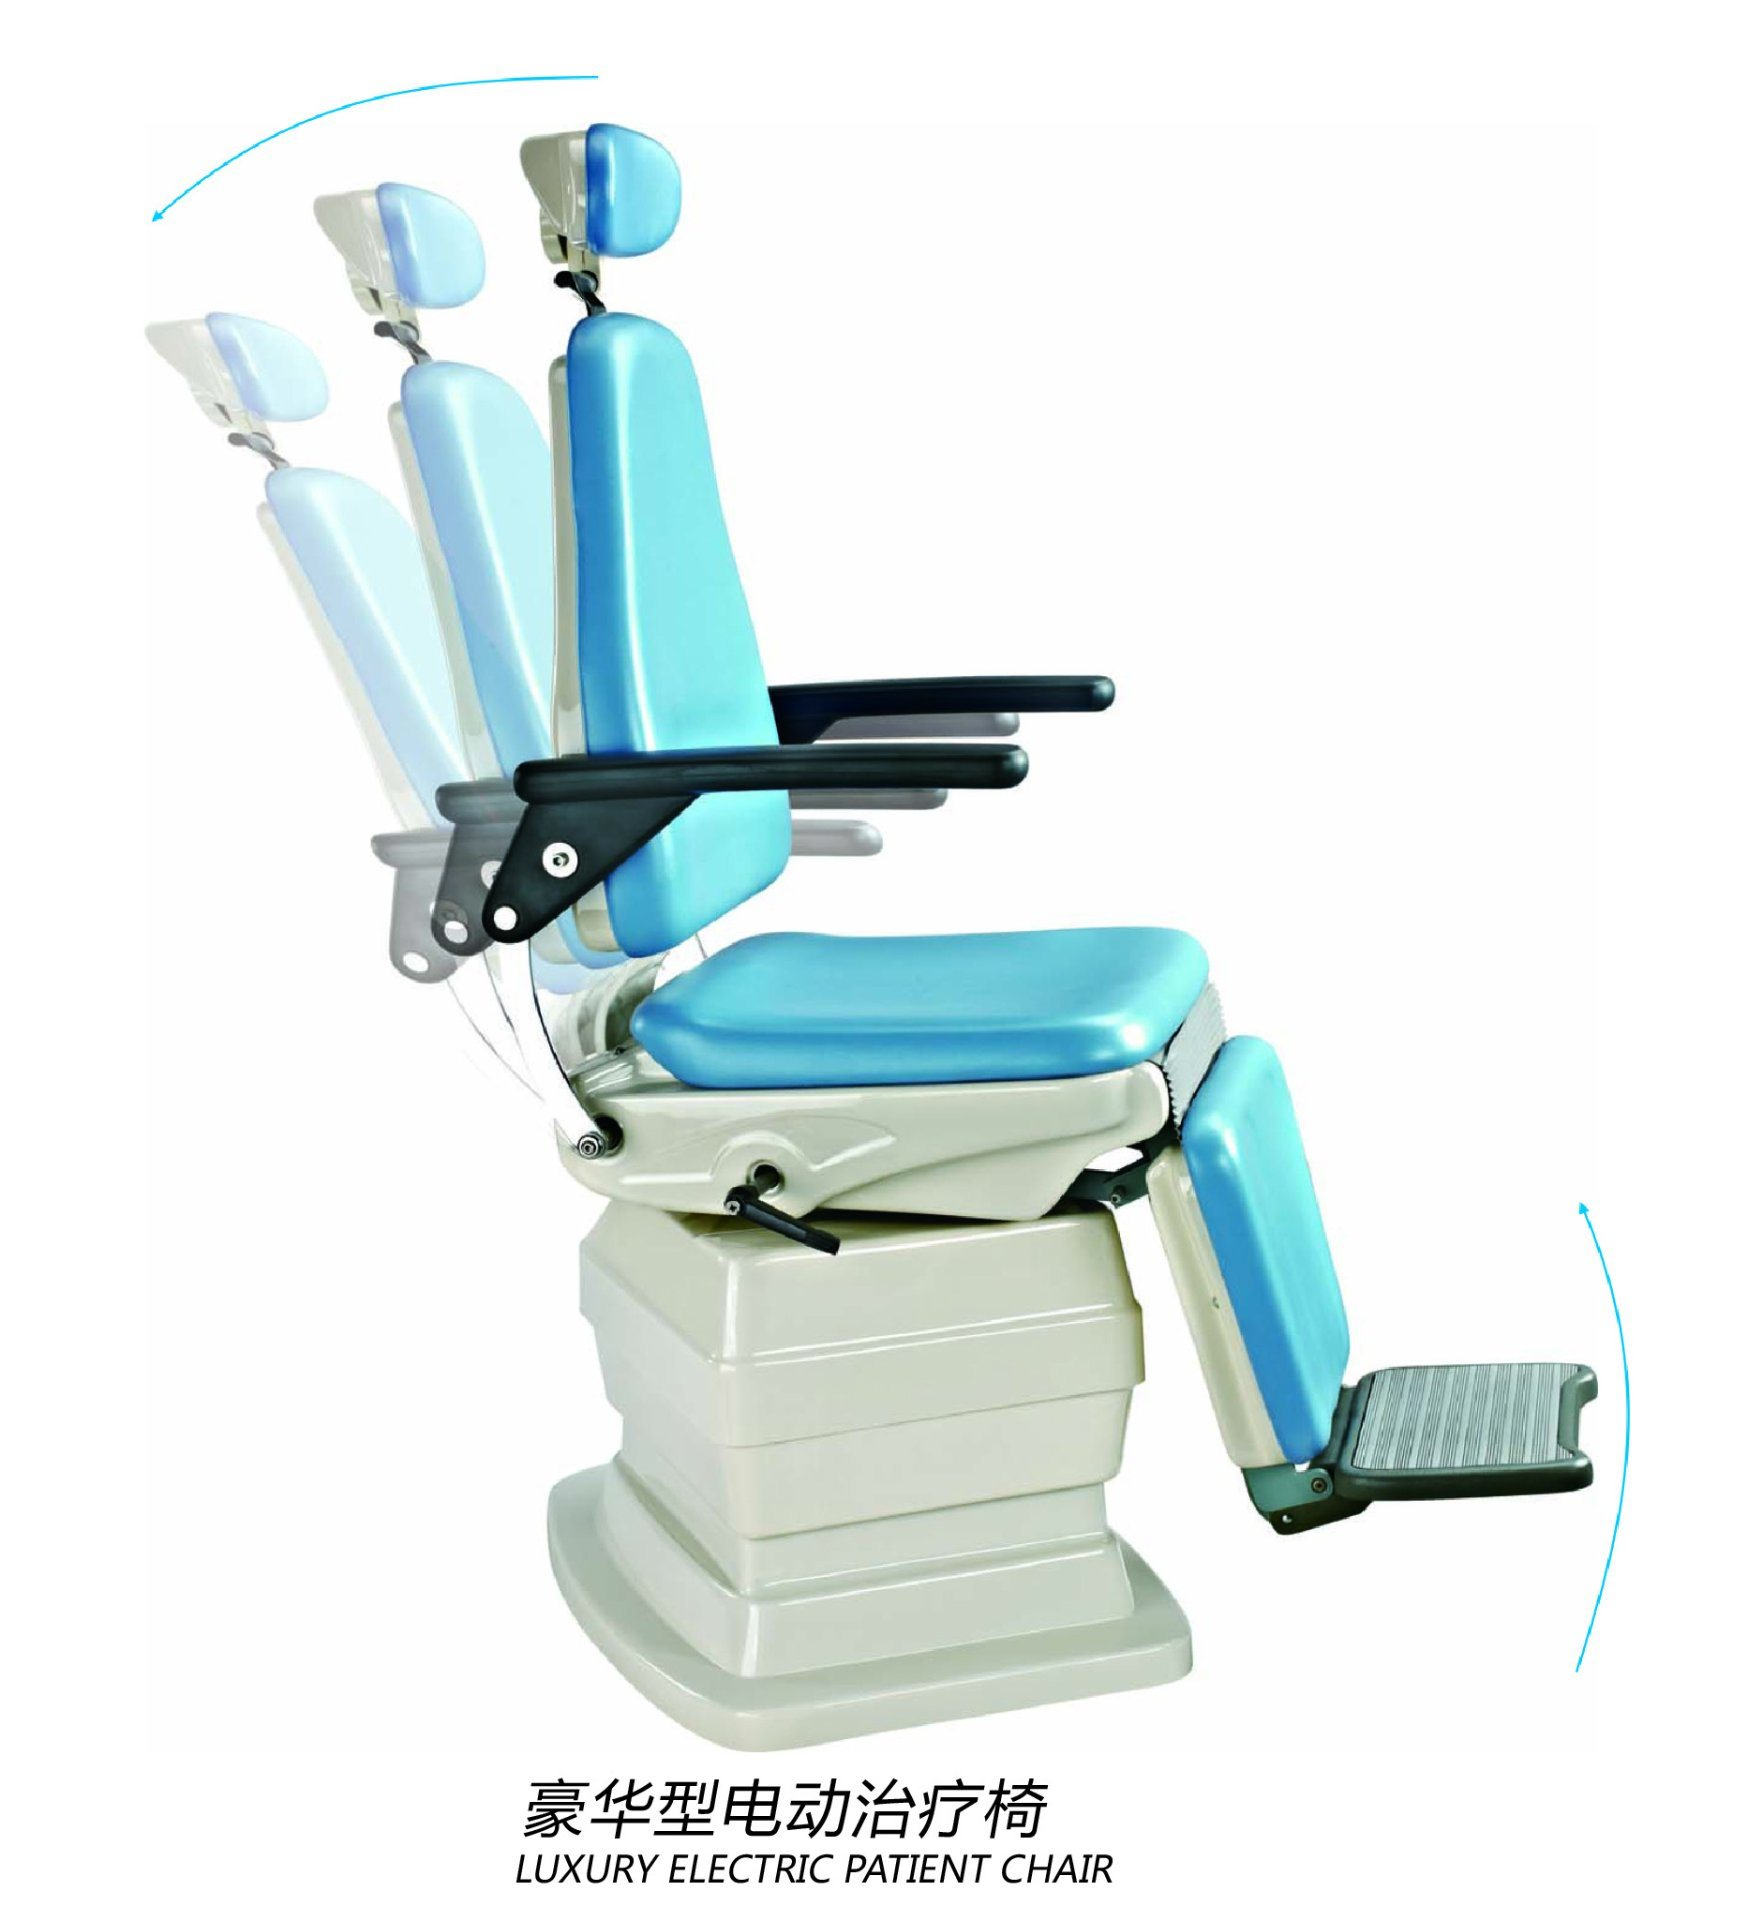 China Electric Automatic Ent Chair - China Ent Chair, Automatic Ent ...